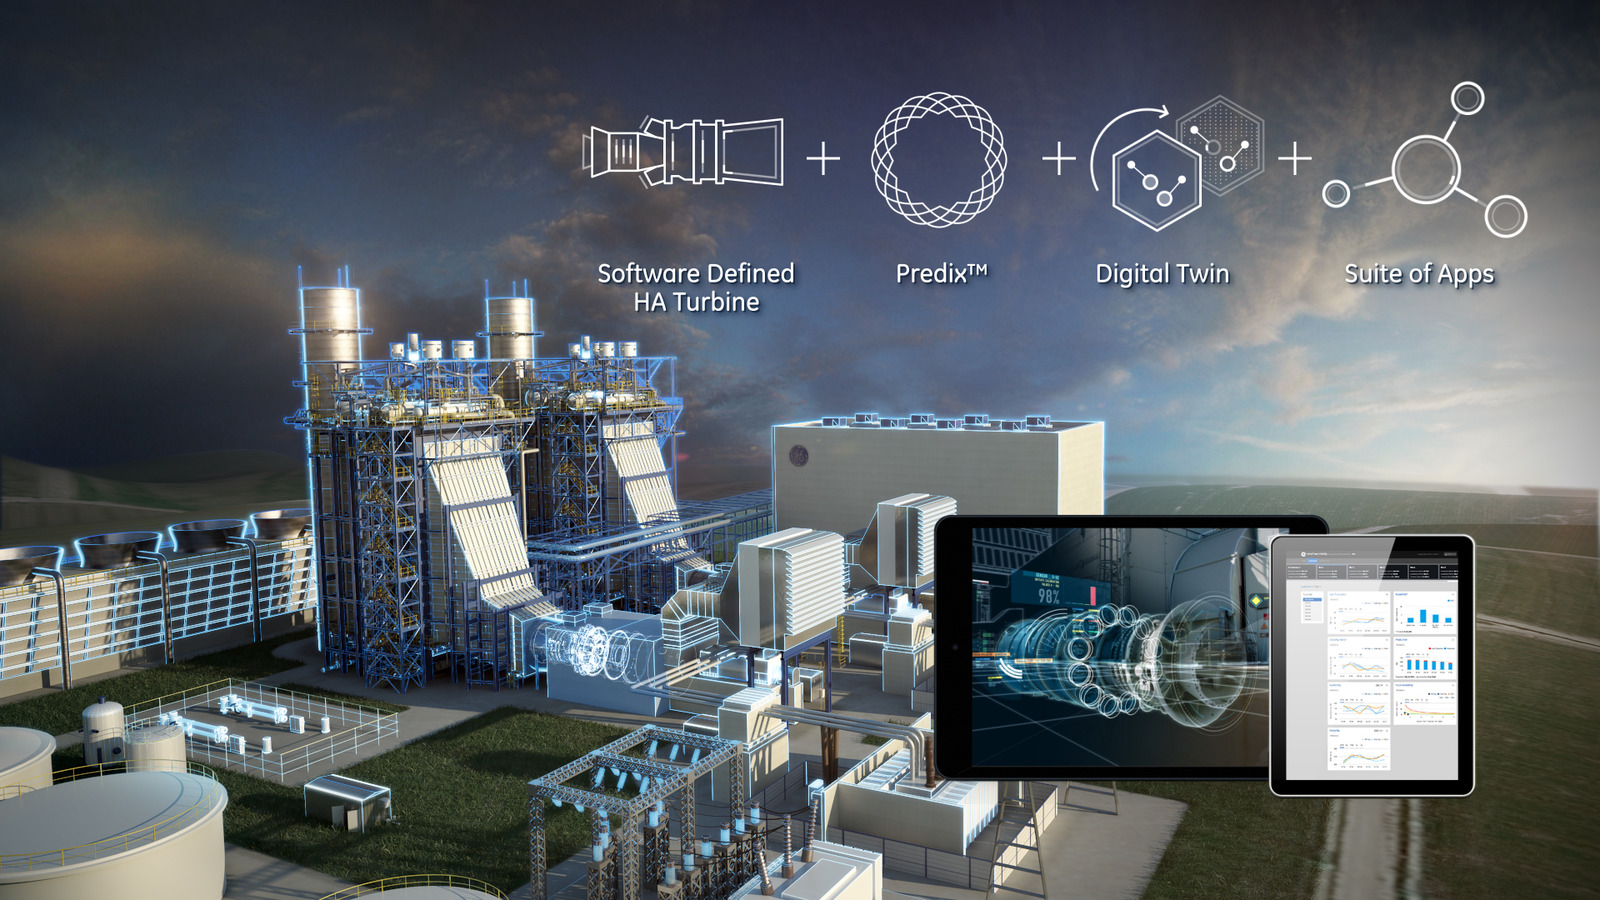 GE: A Simpler, More Valuable Digital Industrial Company